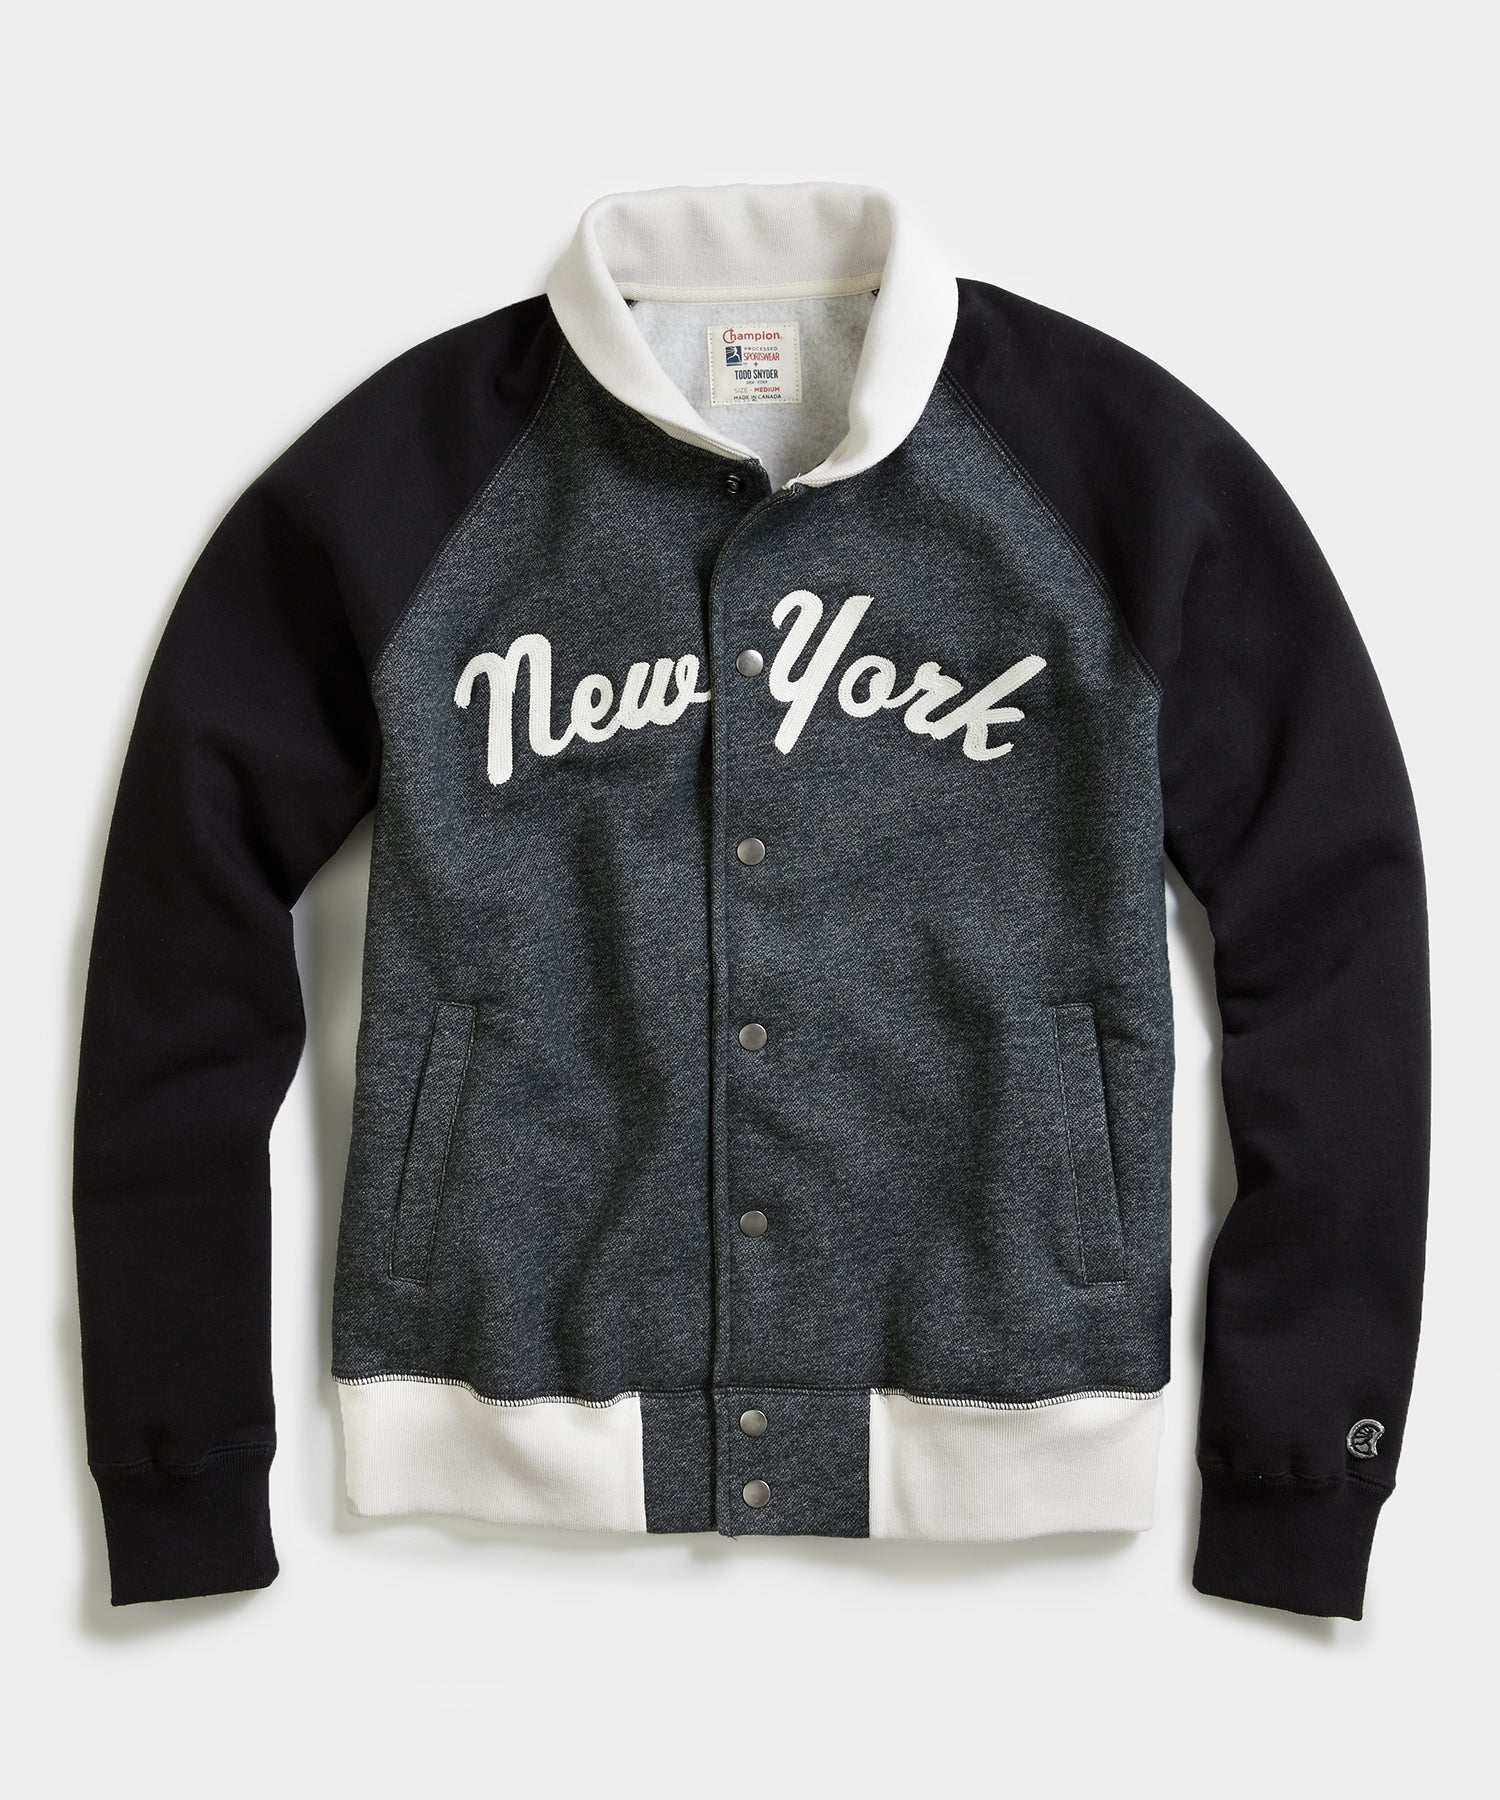 Champion New York Jacket in Dark Charcoal Pepper